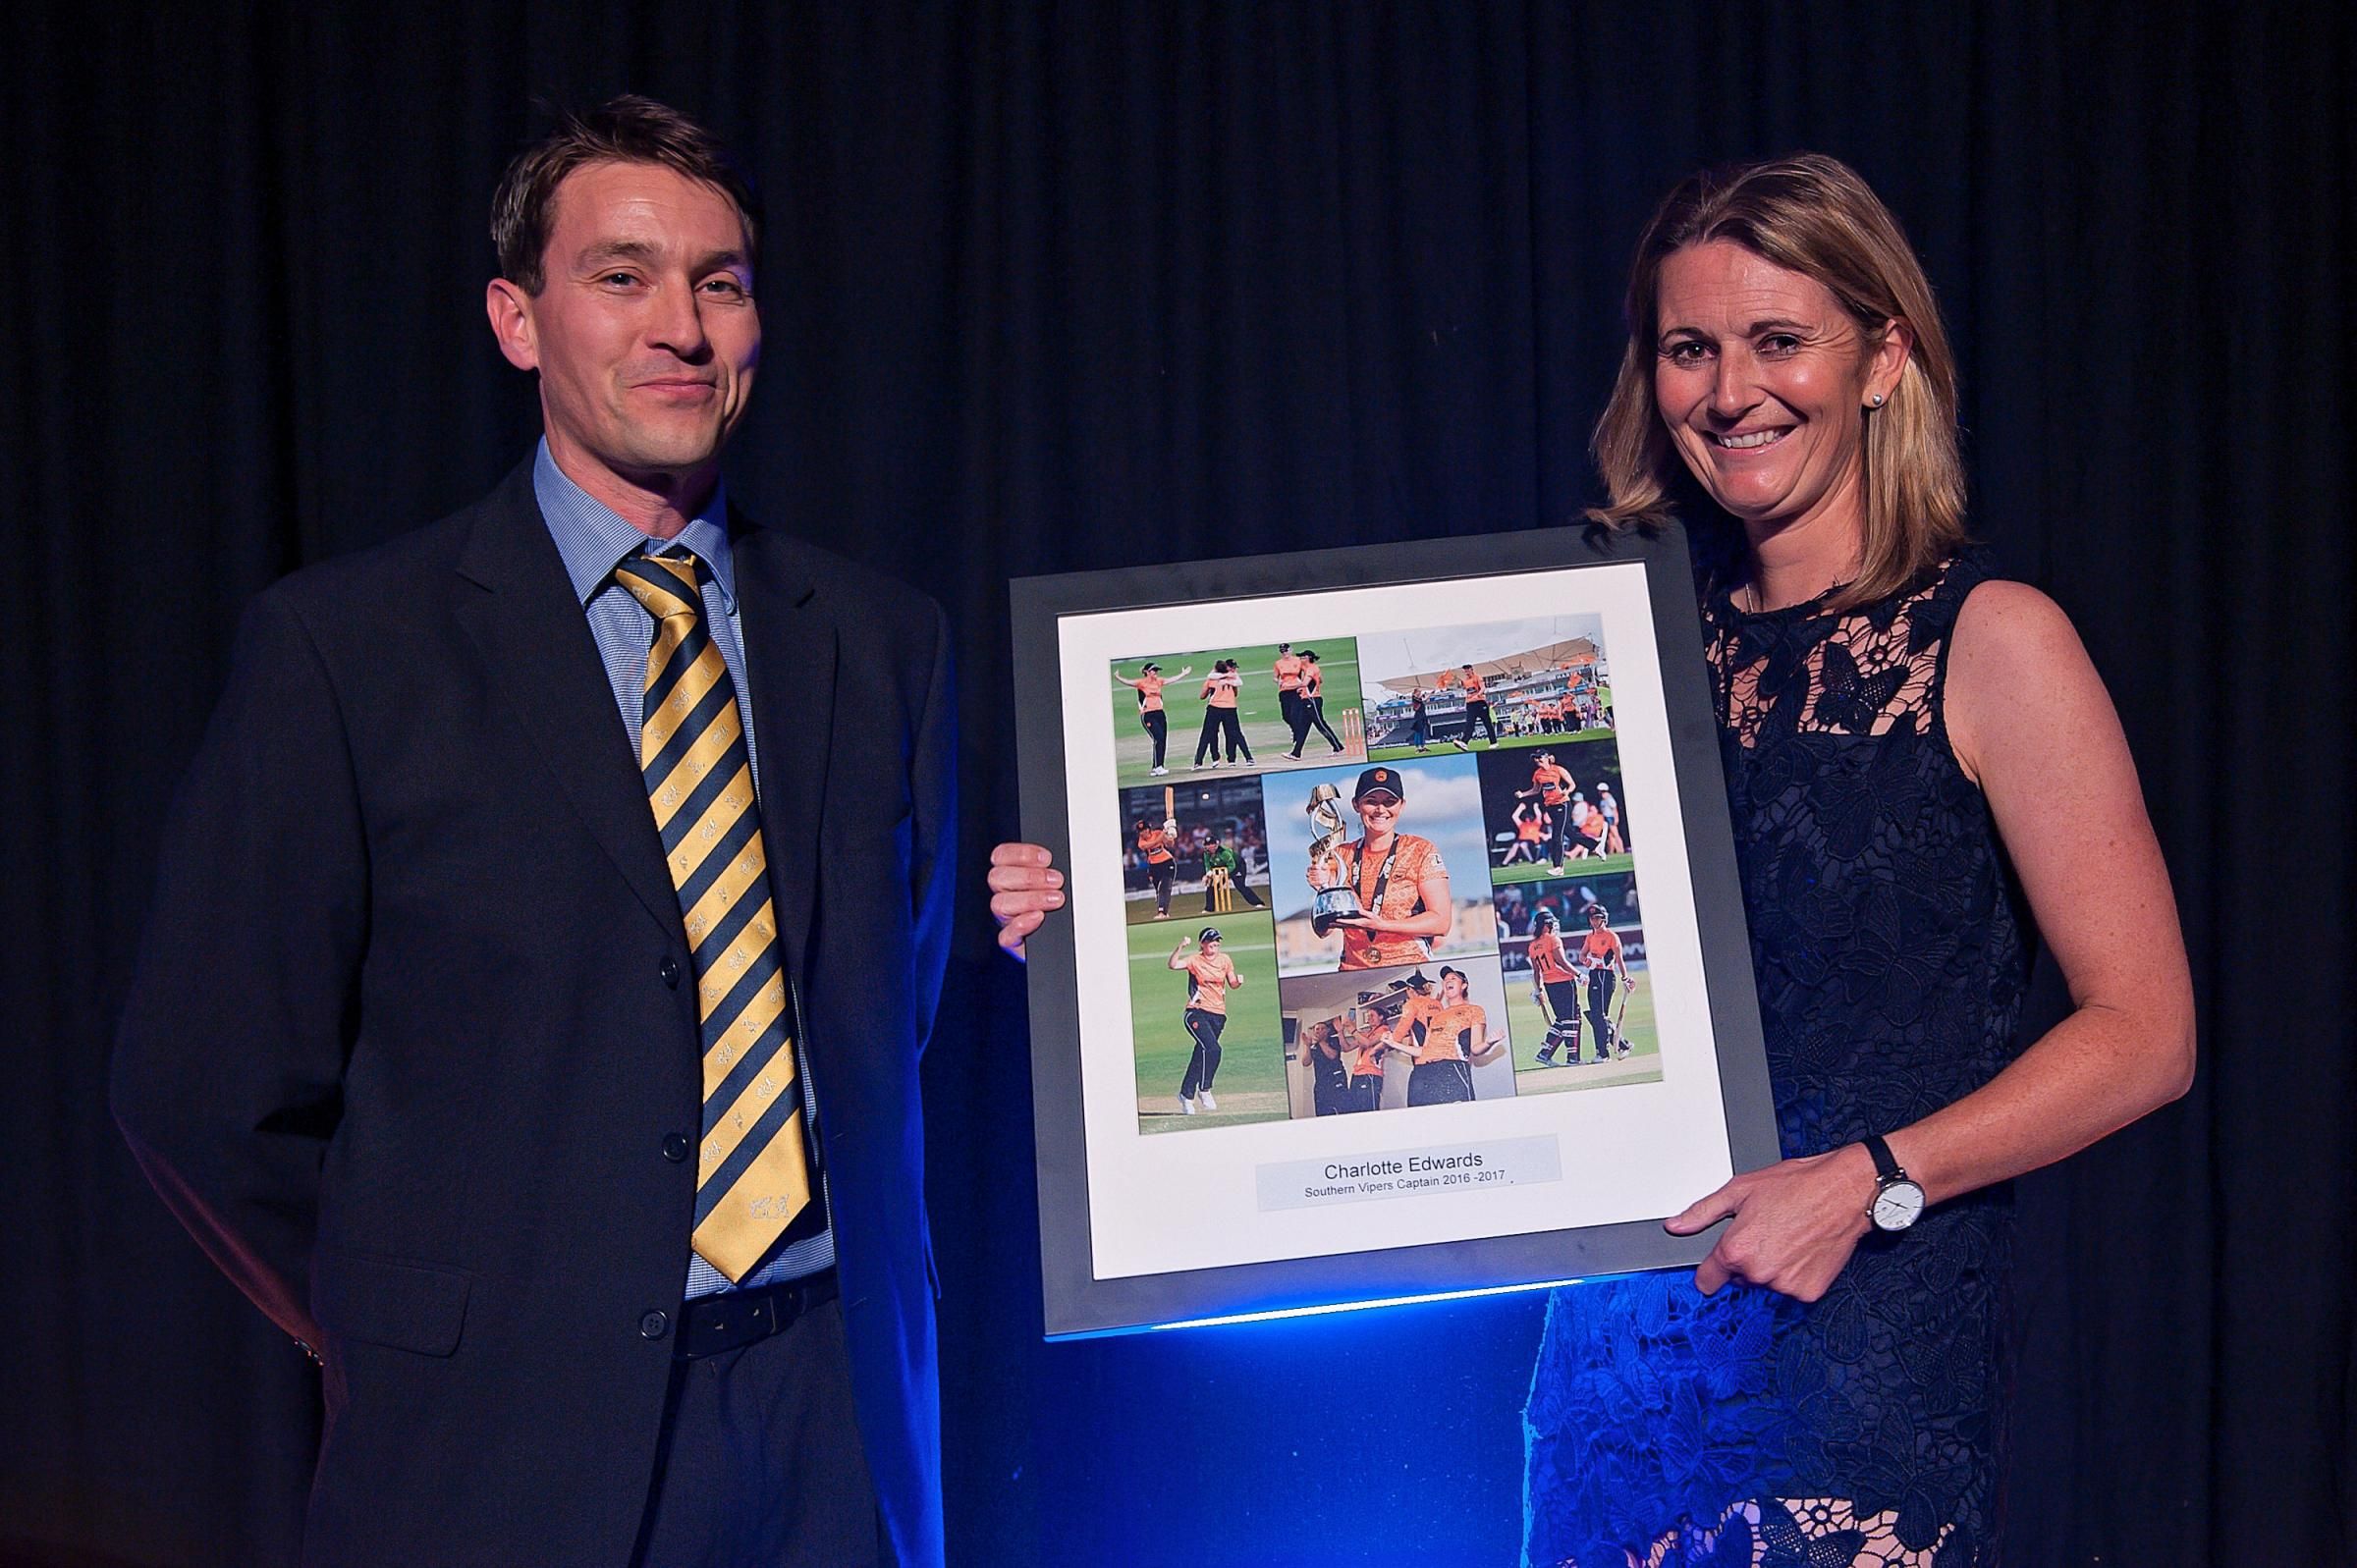 Nick Denning presents Charlotte Edwards with a retirement gift at the end of last season (Photo: Dave Vokes)